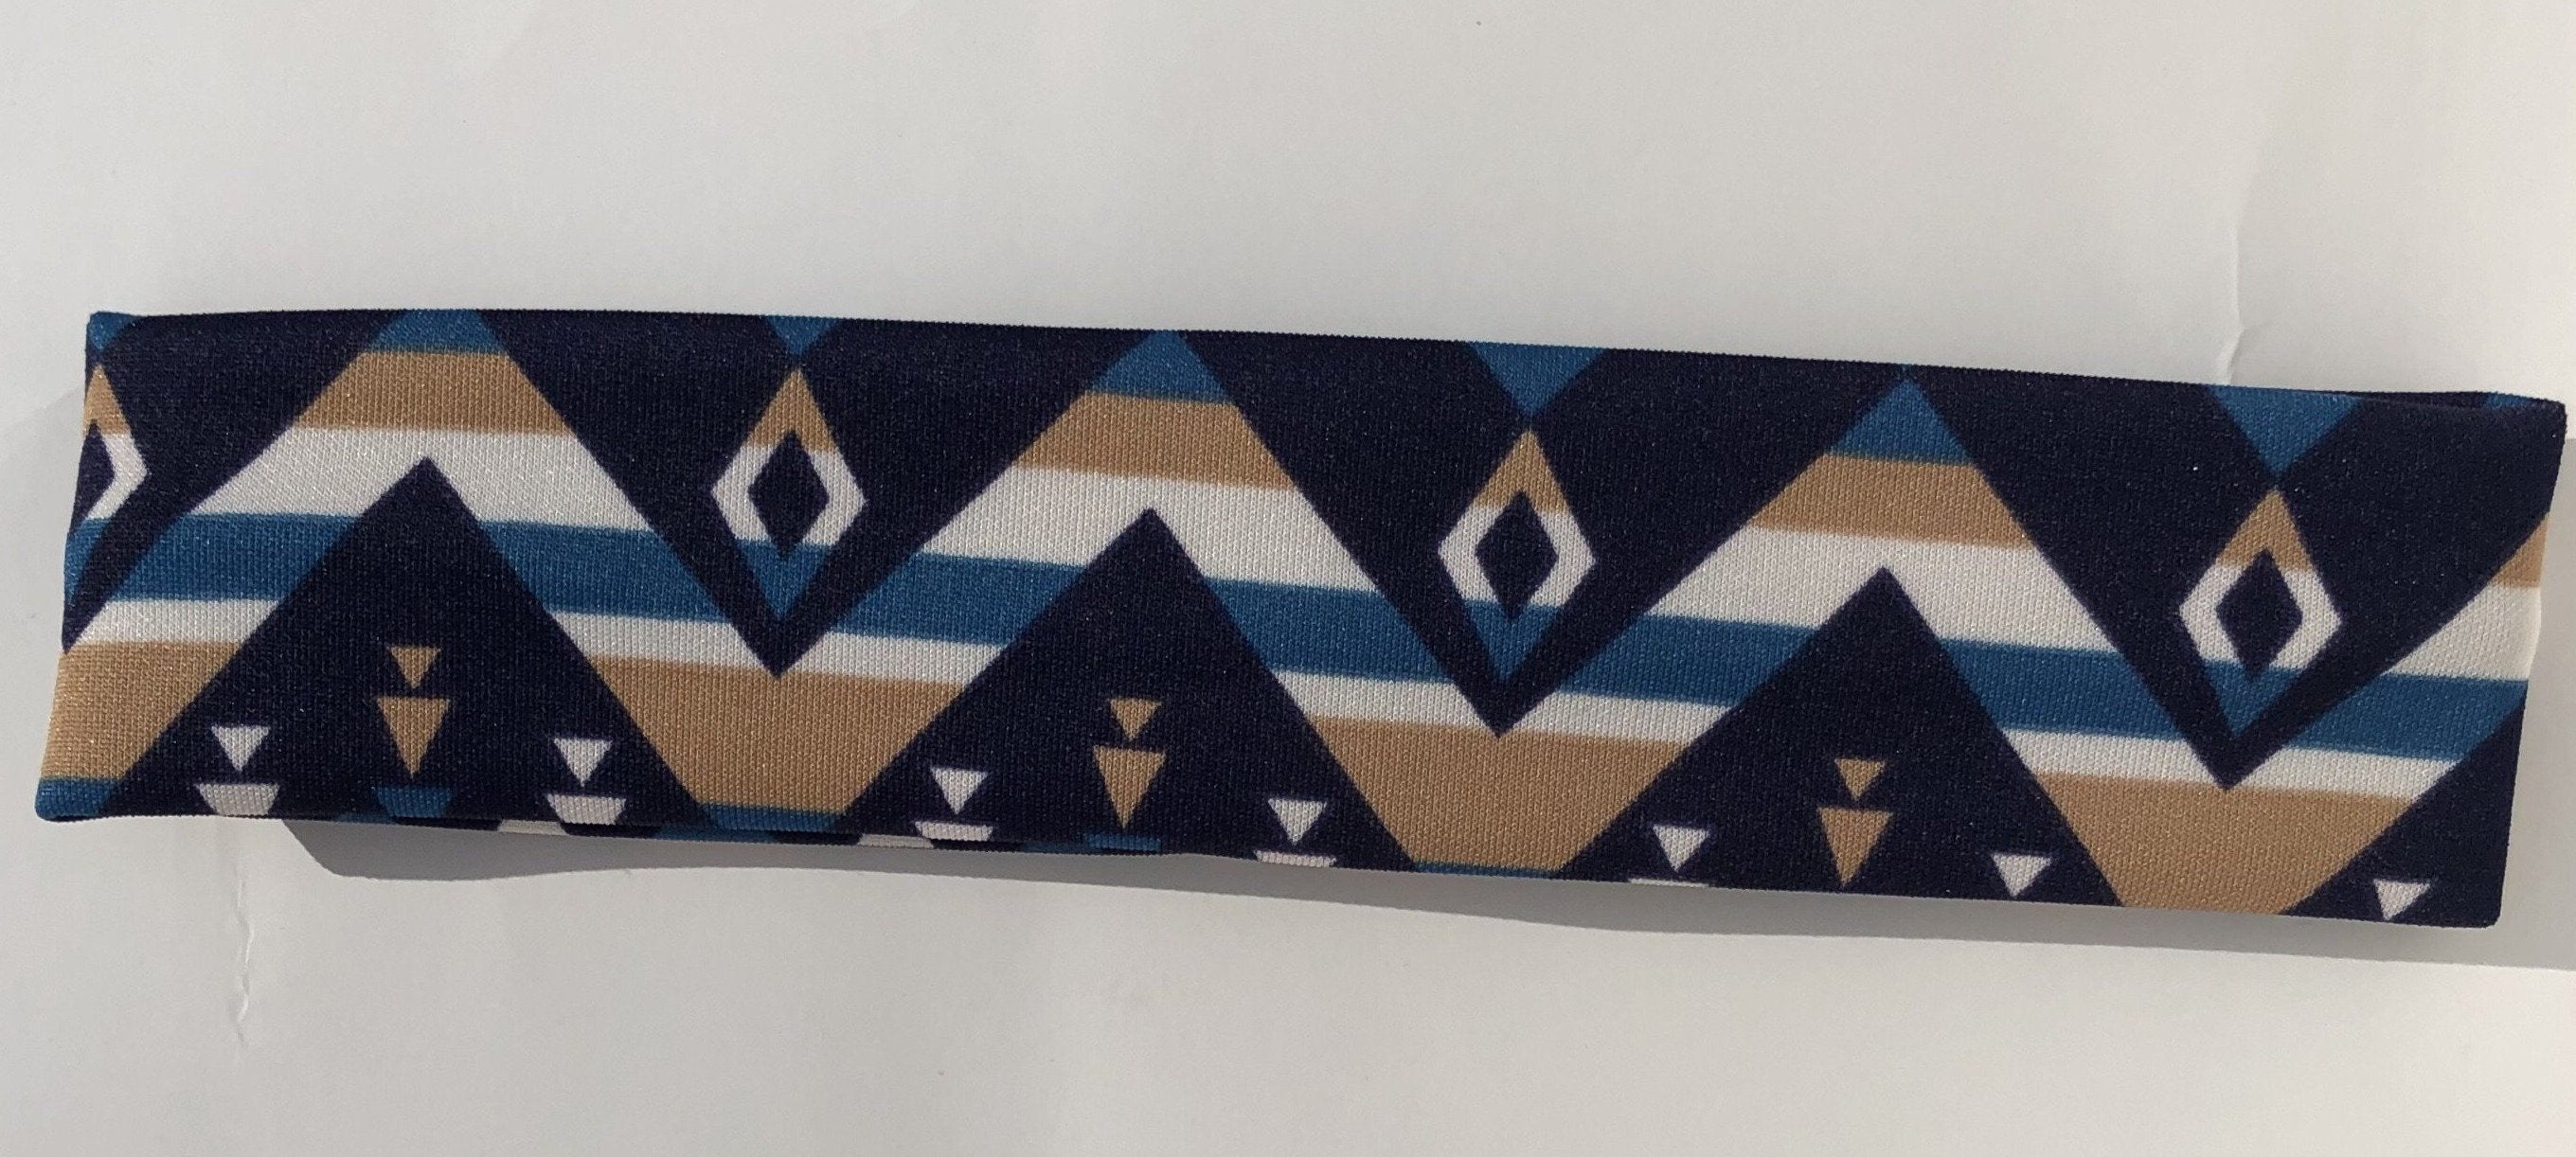 Blue and Tan Headband Headband accessories, black, clothing, comfort, Cotton, Fall, Fashion, fit, fitness, hand wash, head, Headband, Indian, Indigenous, indigenous unity, Men, Mens, Native,